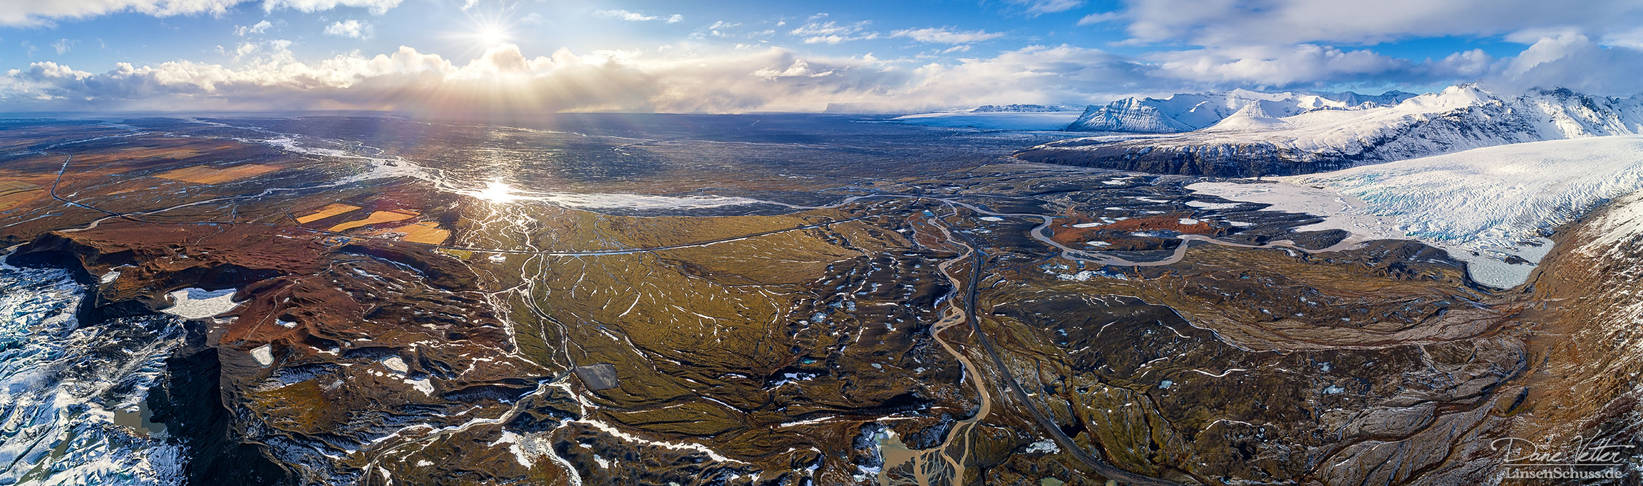 The rough structures of Iceland